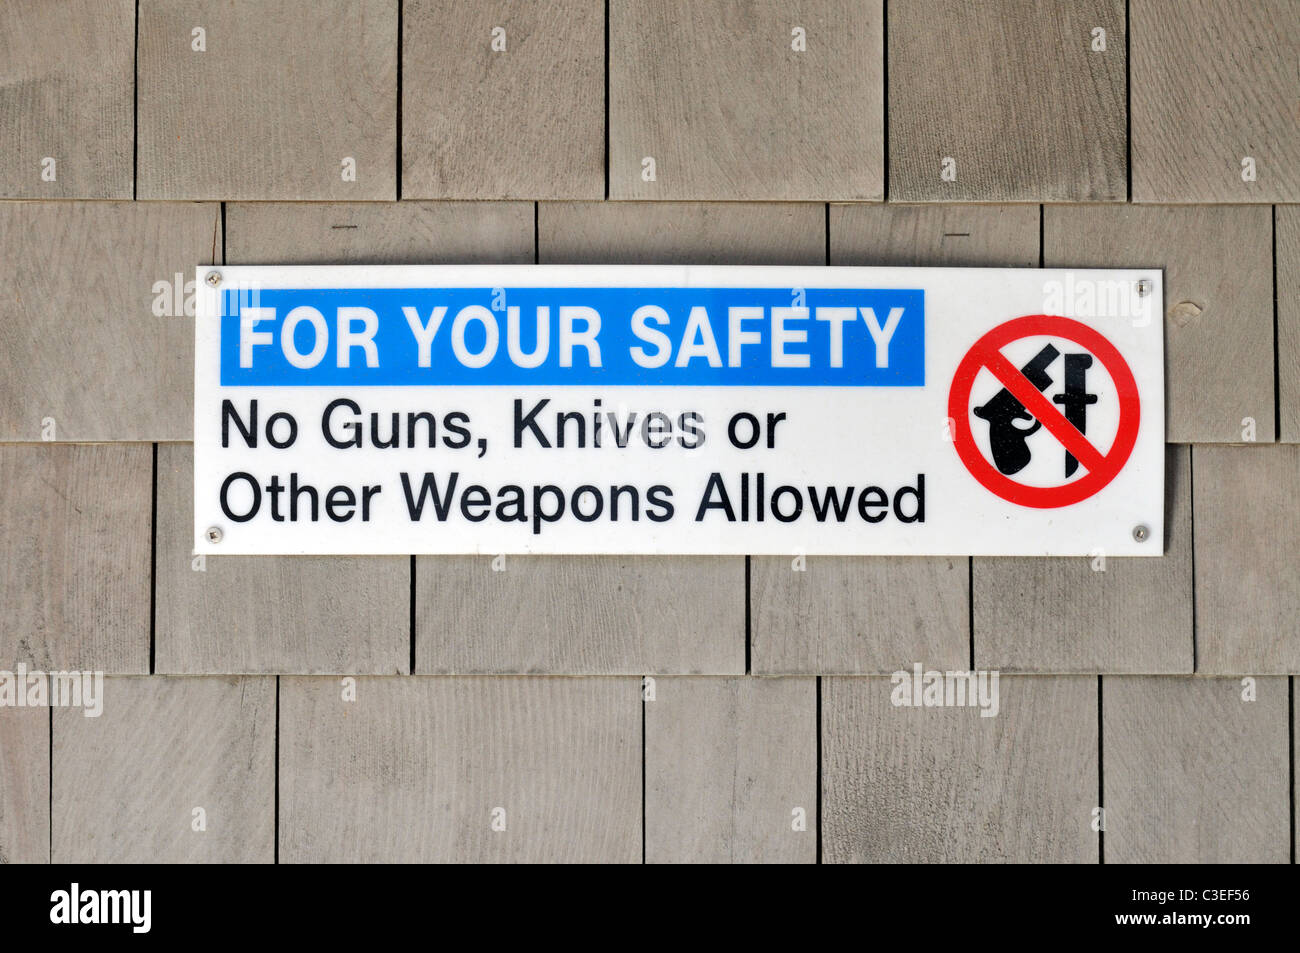 Safety sign on side of building that No guns, knives or other weapons allowed. USA - Stock Image